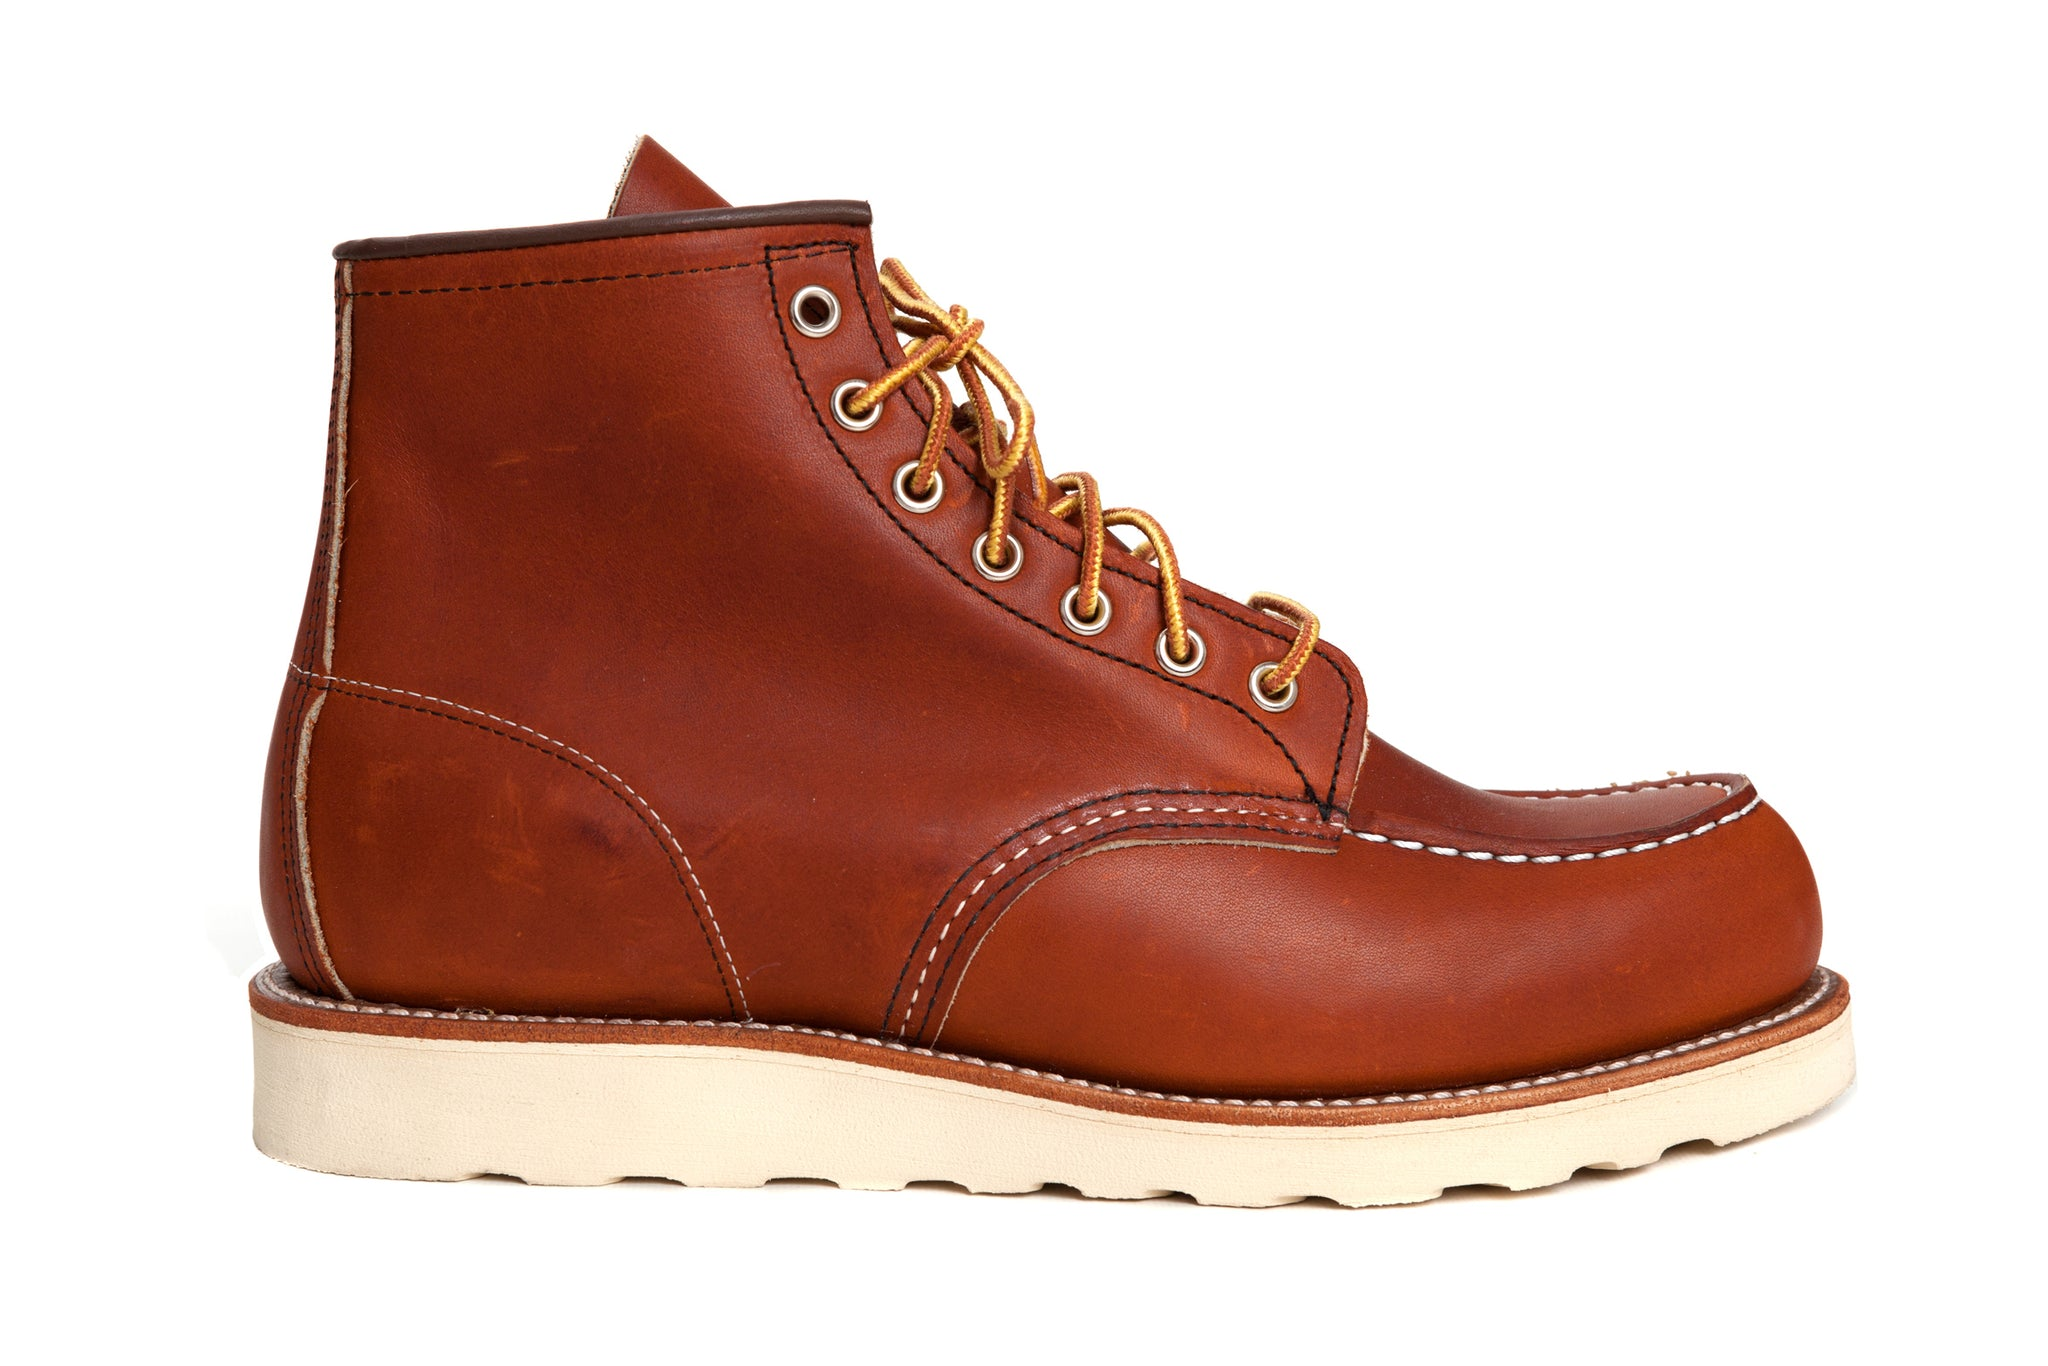 Red Wing Shoes - Classic Moc Toe - 875 - Oro Legacy - Regent Tailoring